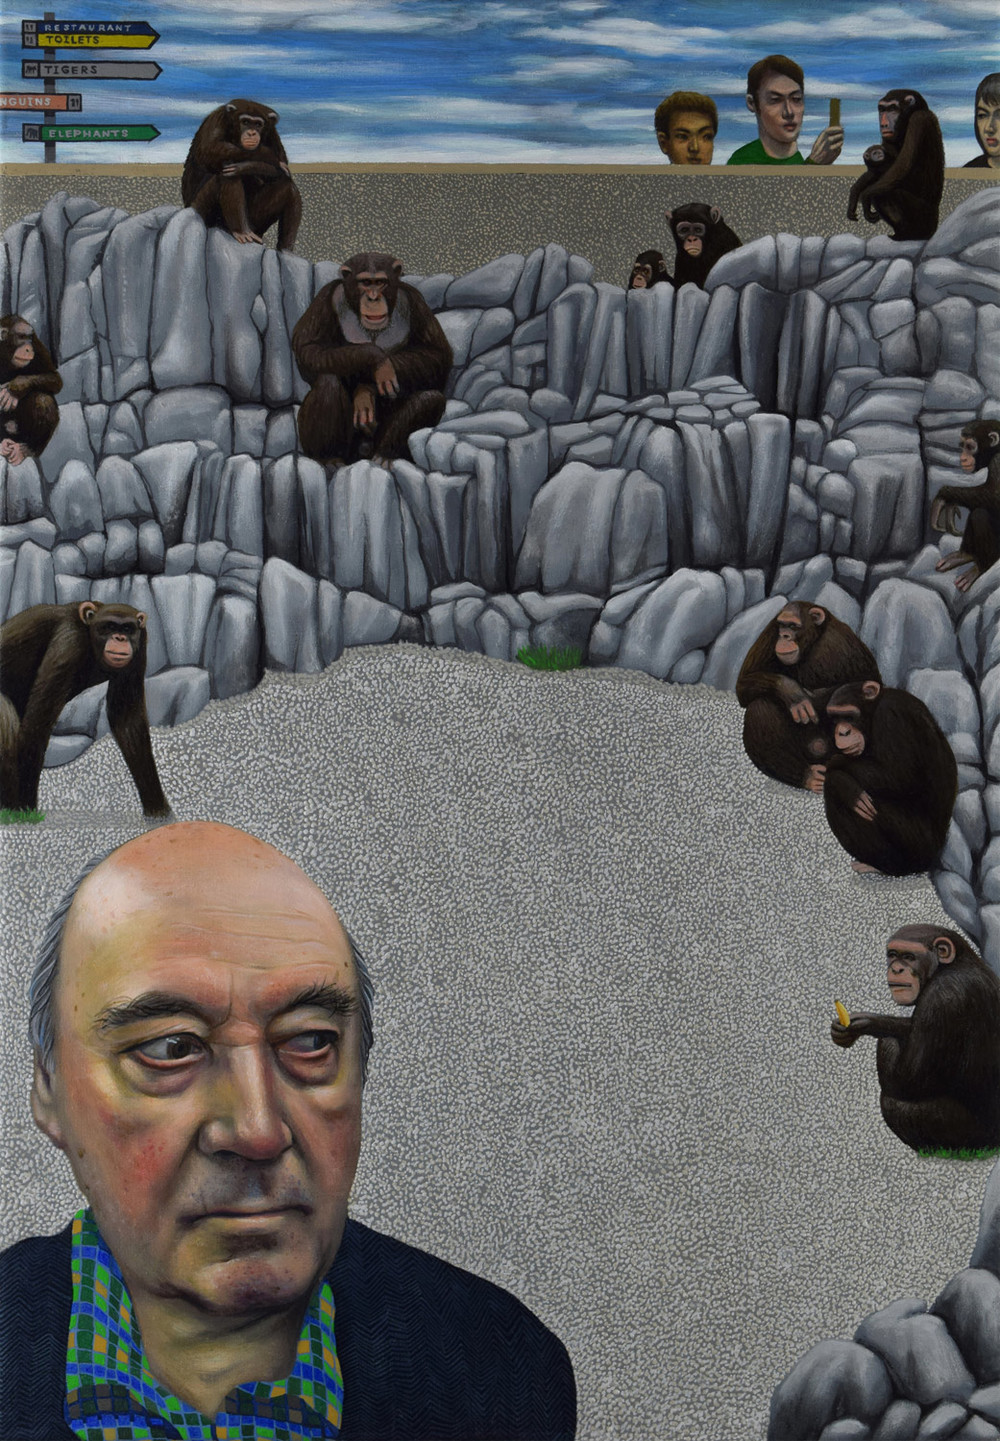 Zoologist Desmond Morris and The Monkey Pen